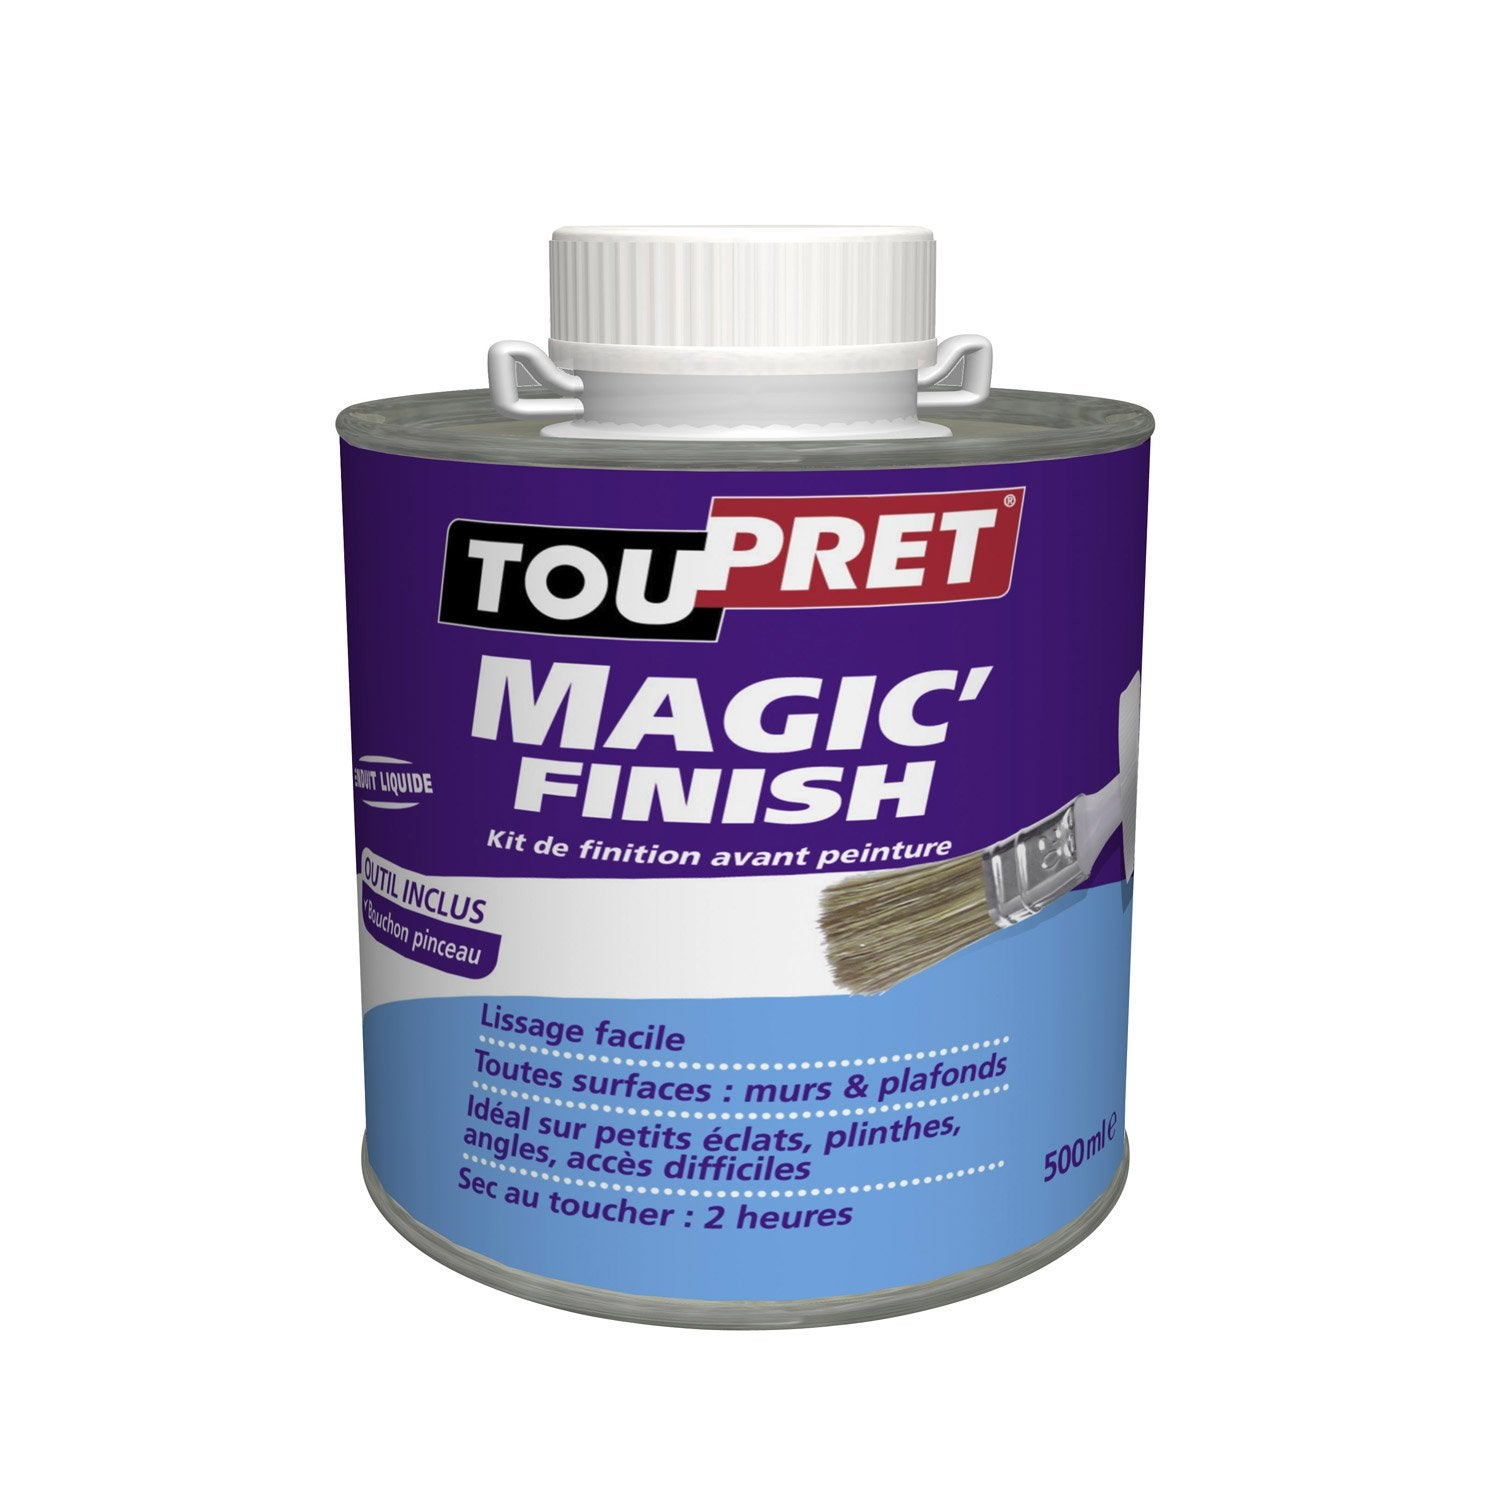 Enduit de lissage toupret magic finish 500 ml leroy merlin for Video enduit de lissage